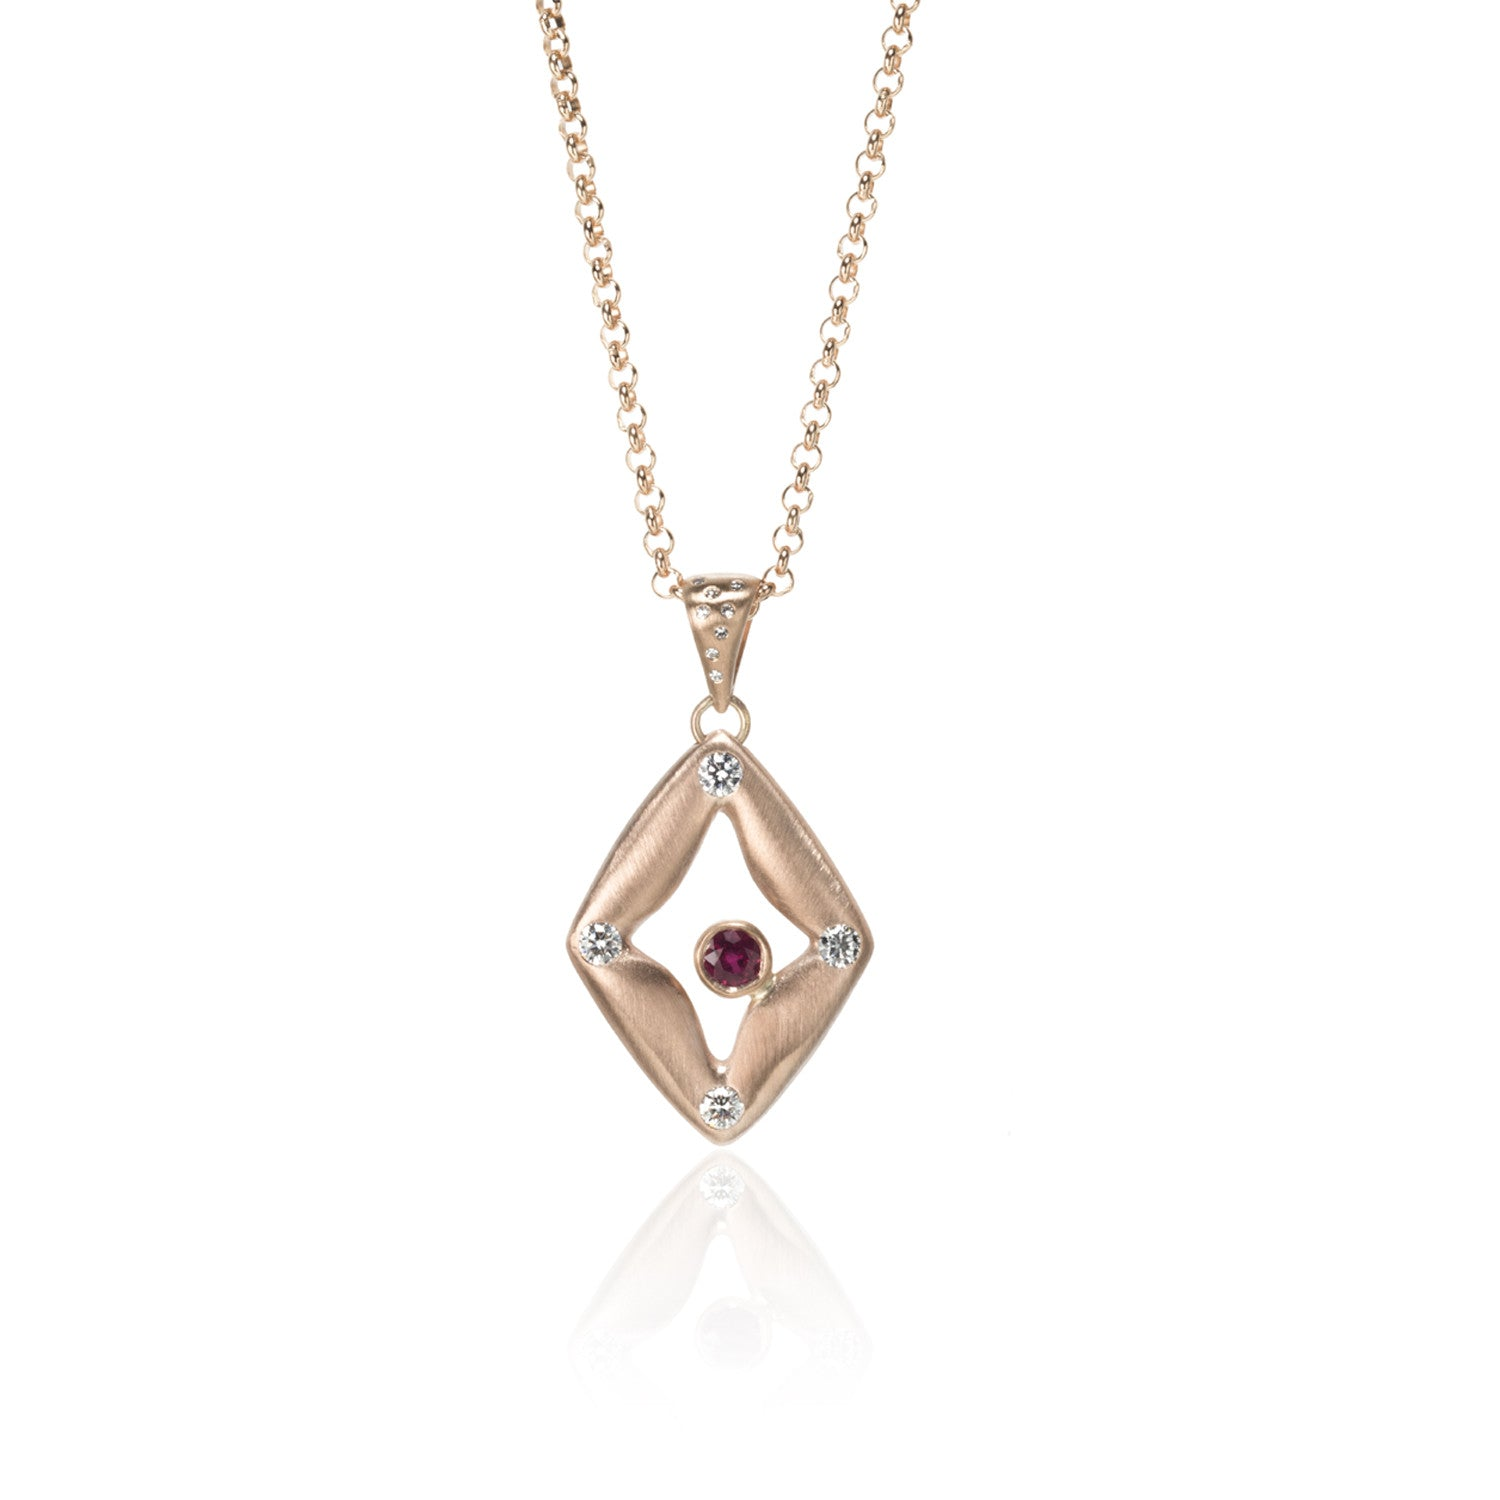 Diamant Necklace - 18K Rose Gold